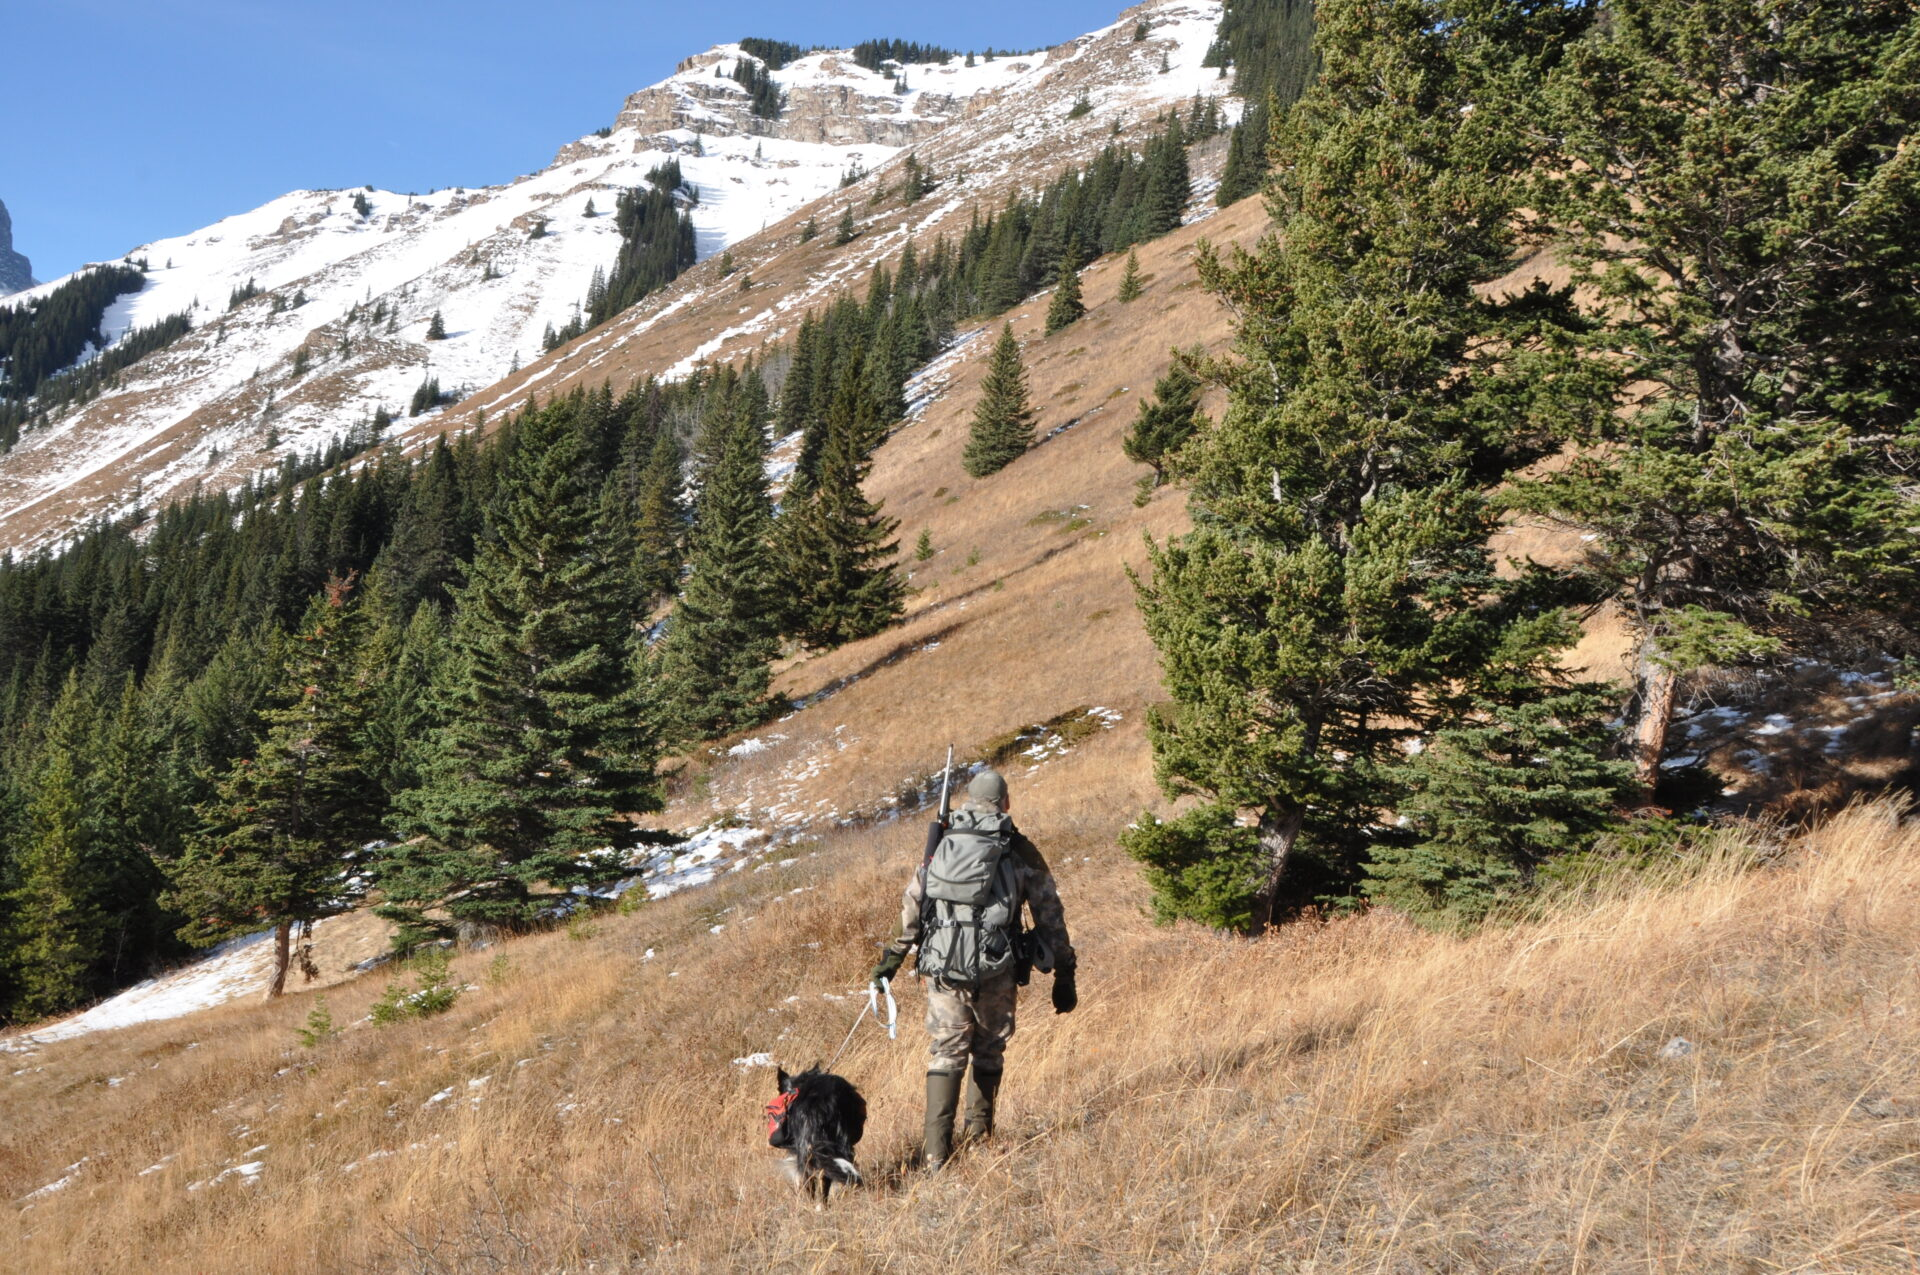 Pack dogs are required to be leashed in British Columbia.